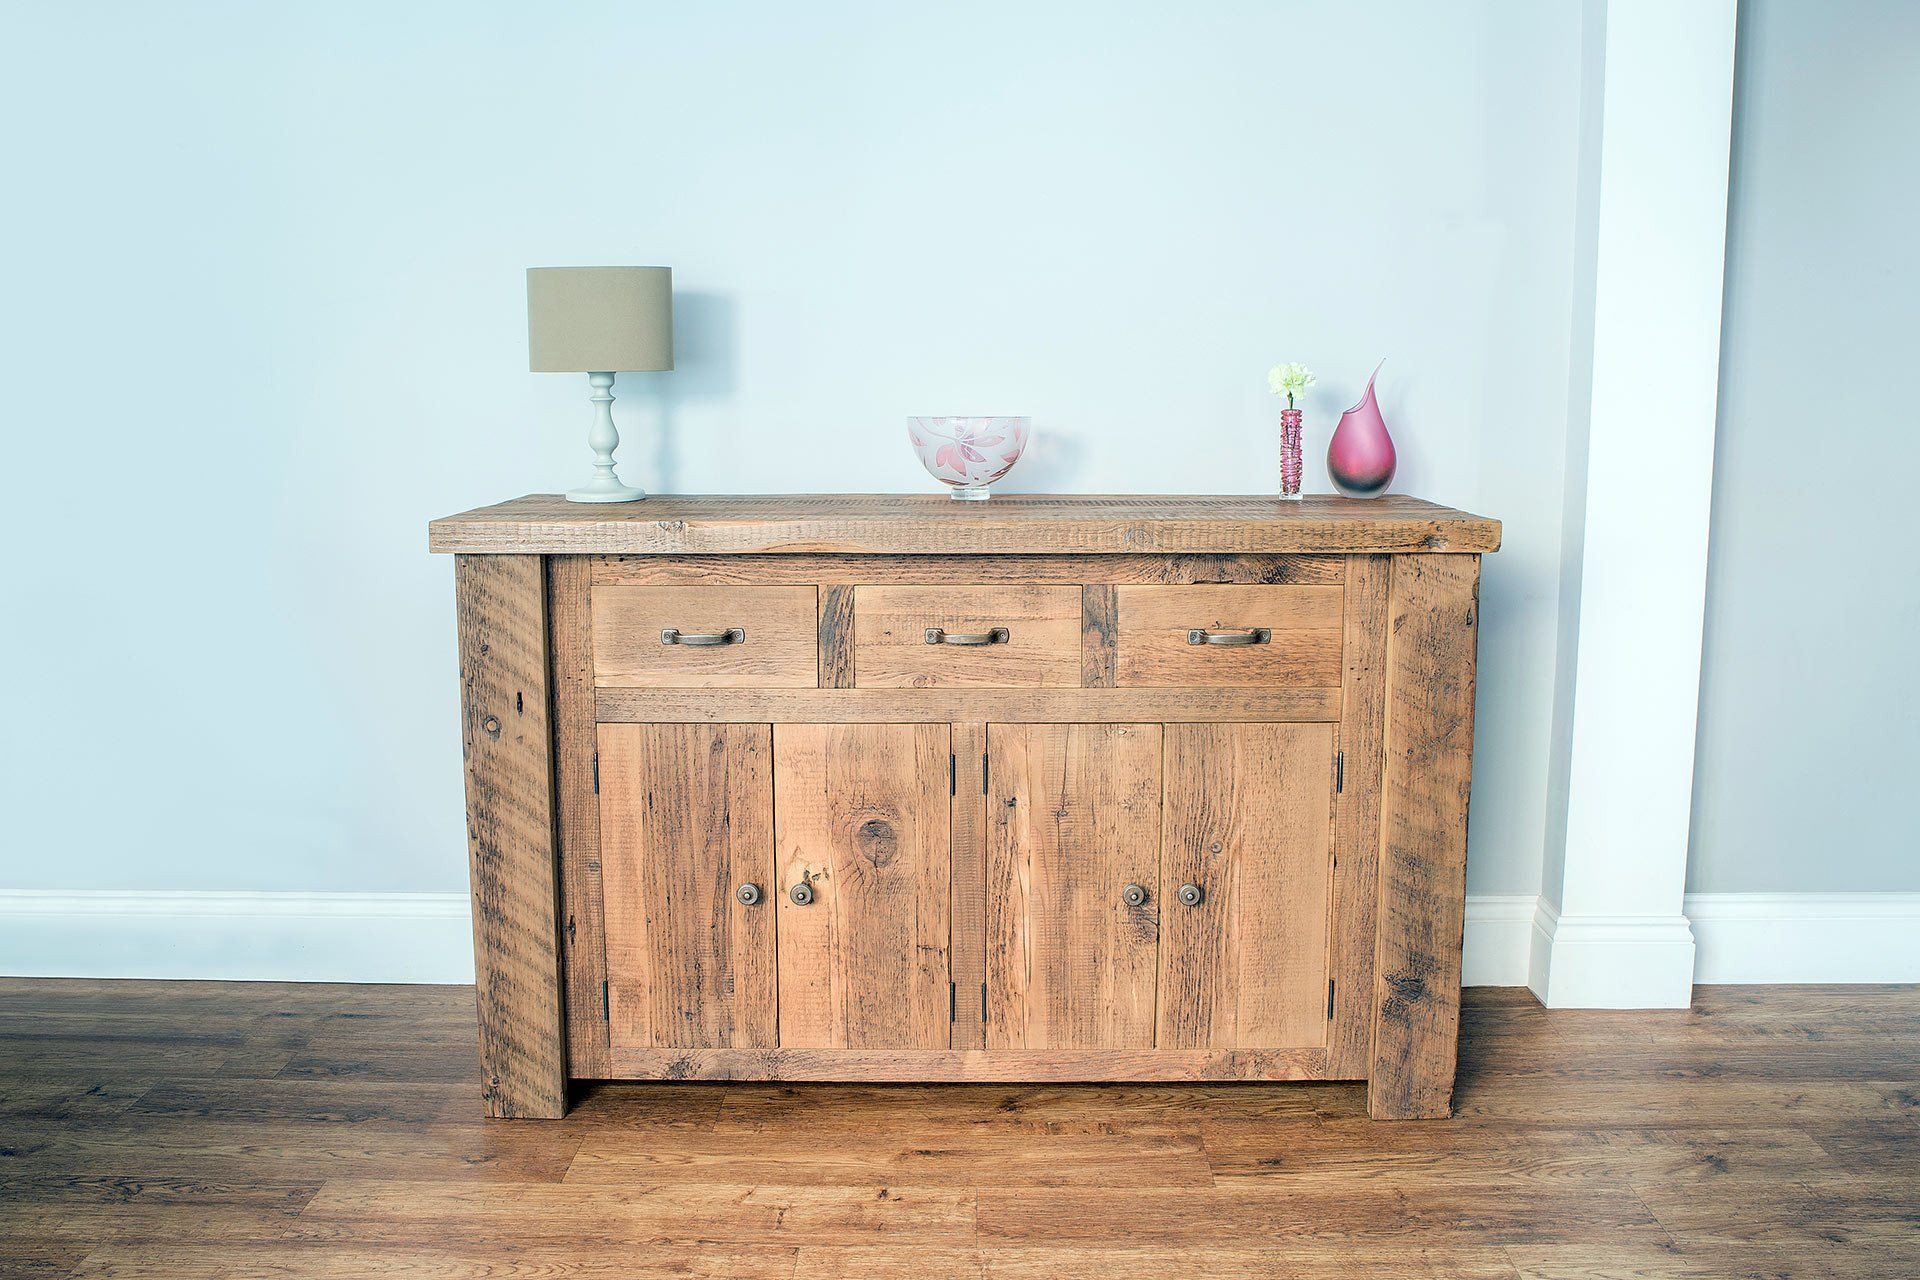 Warm 179.5cm Sideboard With Antique Handles & Knobs